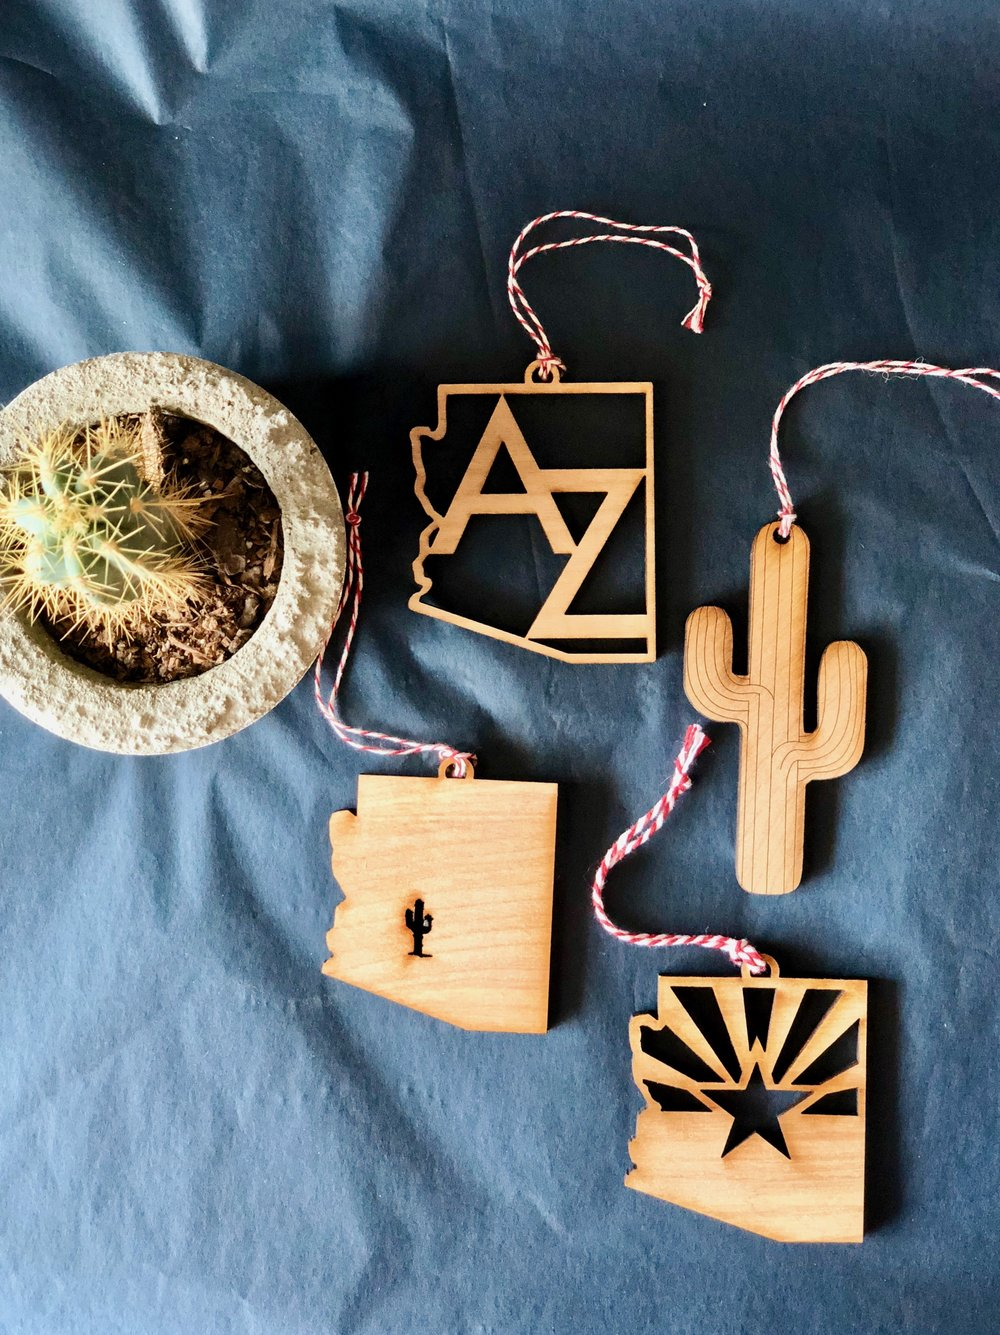 8. Wooden Arizona Ornaments  - Not just for the holidays. These unique wooden ornaments are available in a variety or AZ styles, and are made locally in Gilbert! We love leaving these for our guests, tying onto a gift bag, or tucking into our suitcase for ultra lightweight souvenirs. $10/each